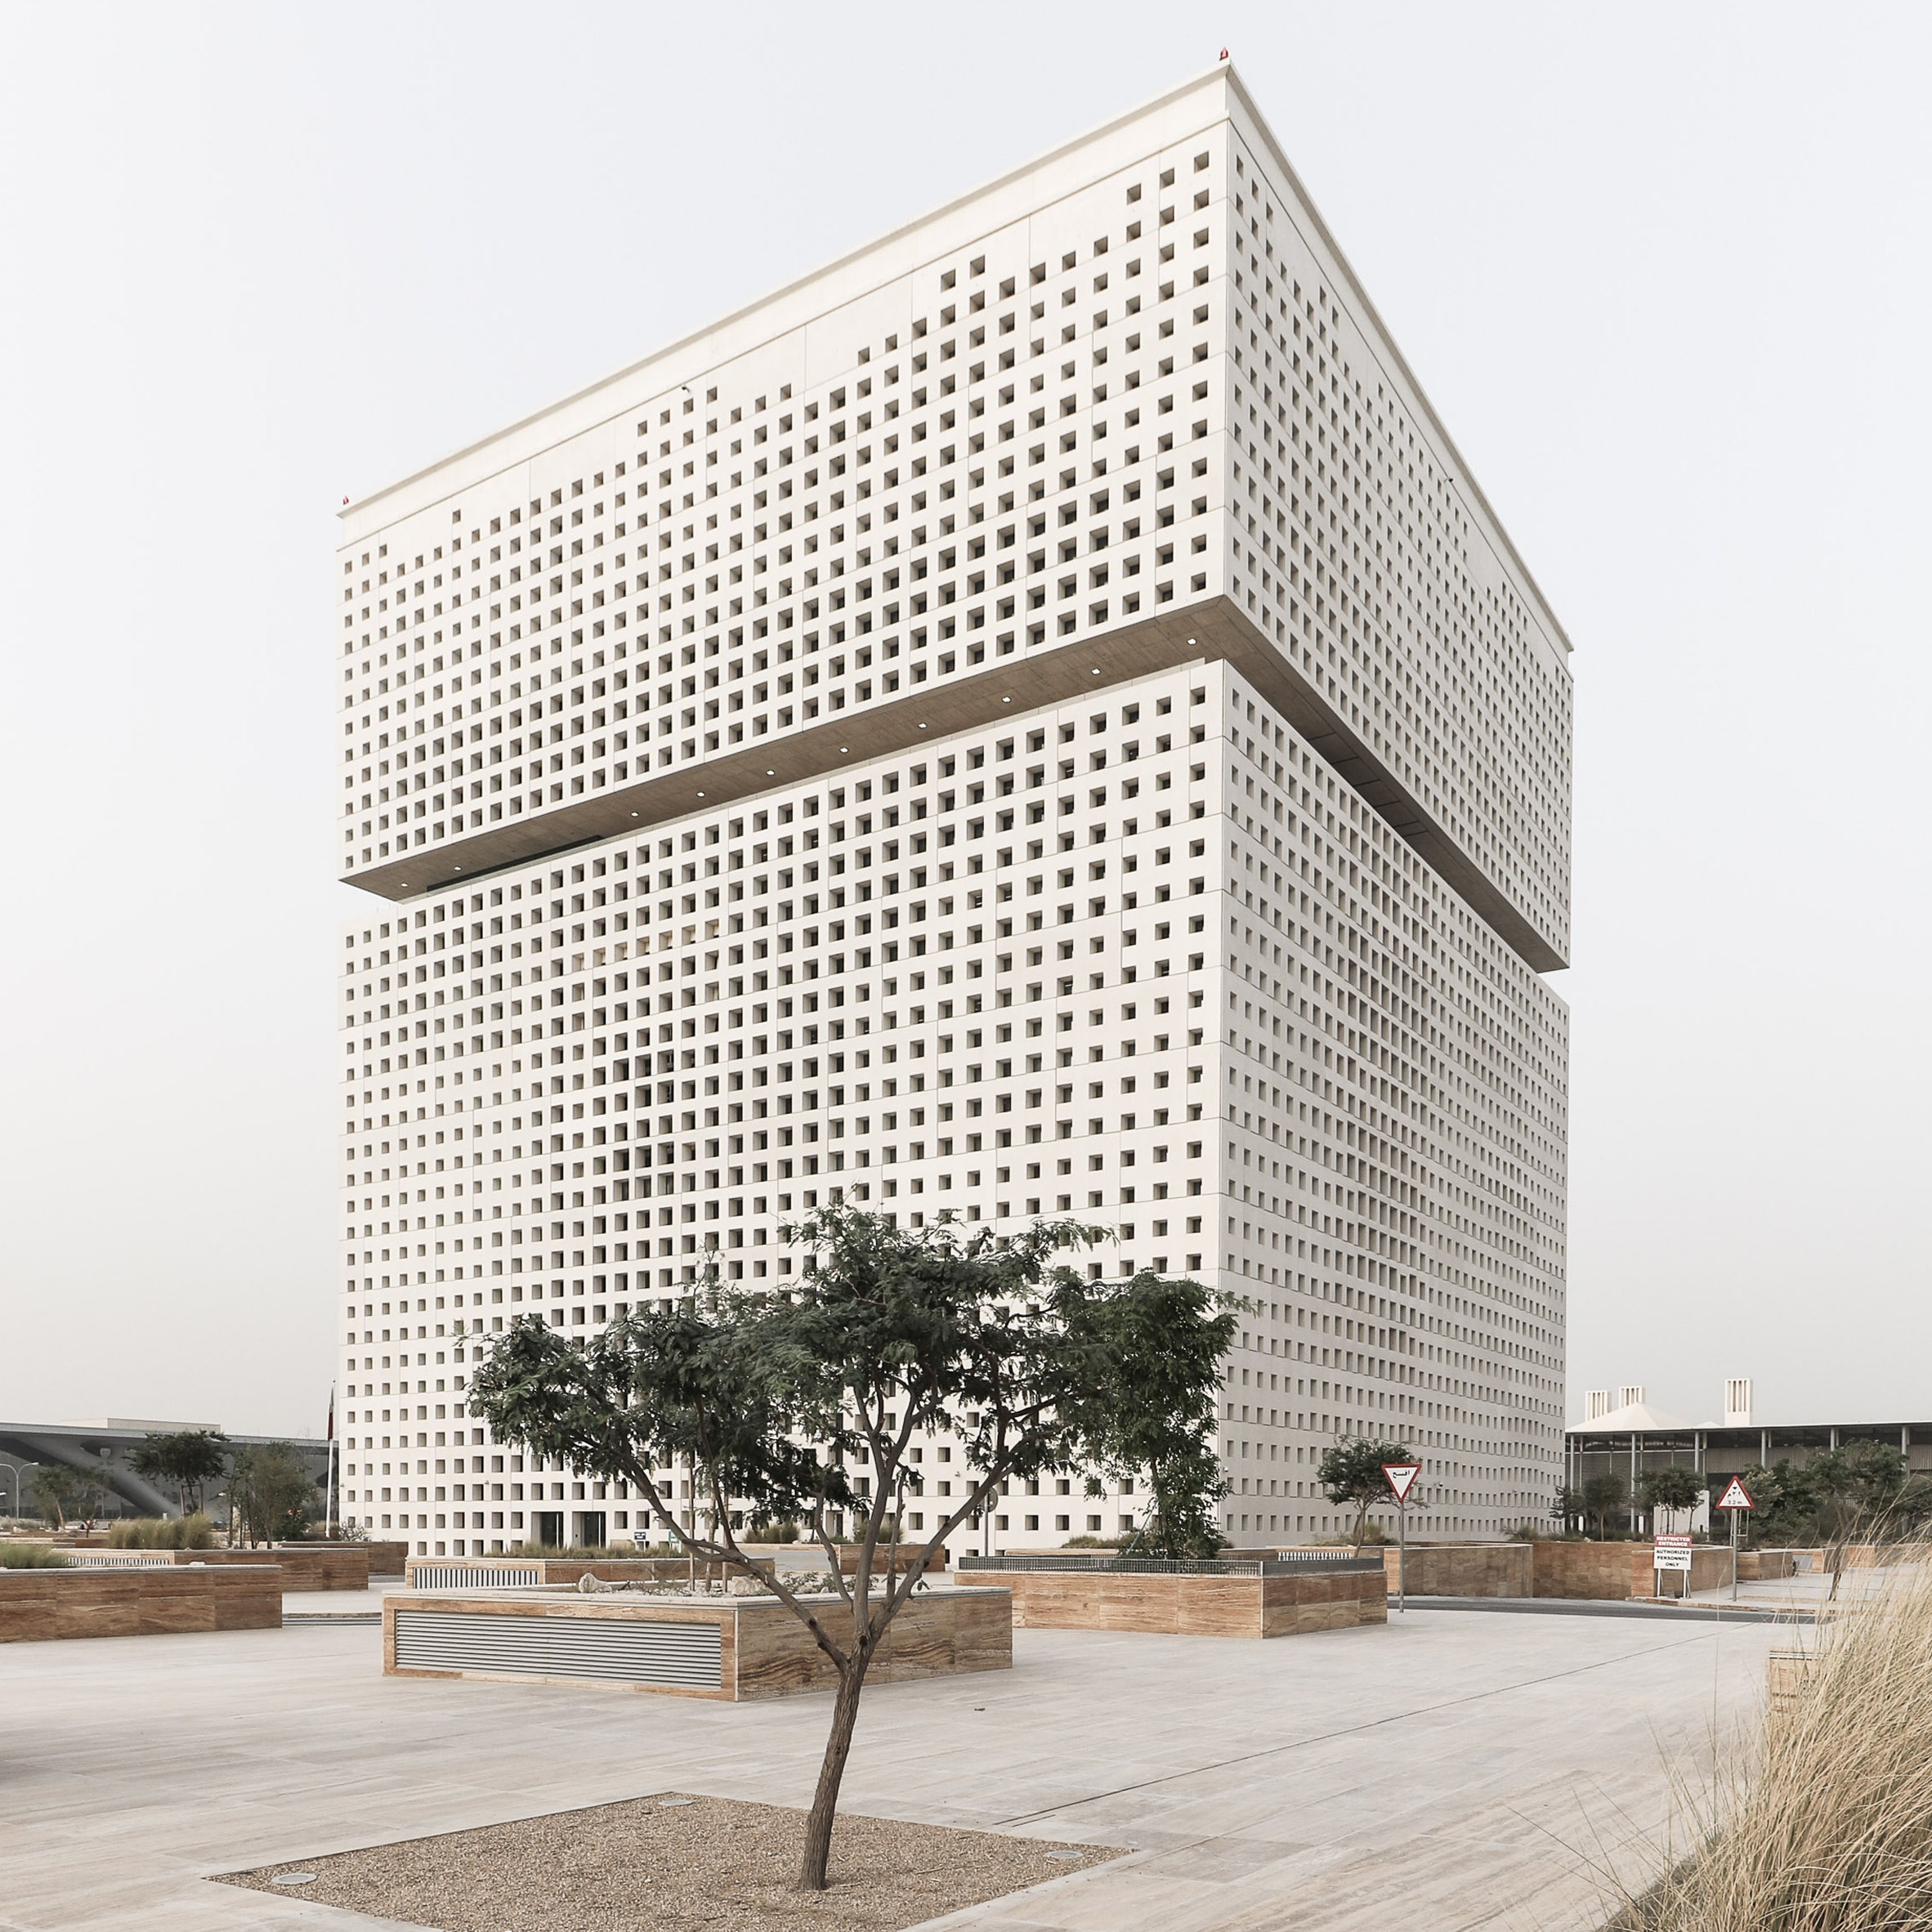 OMA's Qatar National Library nears completion in Doha